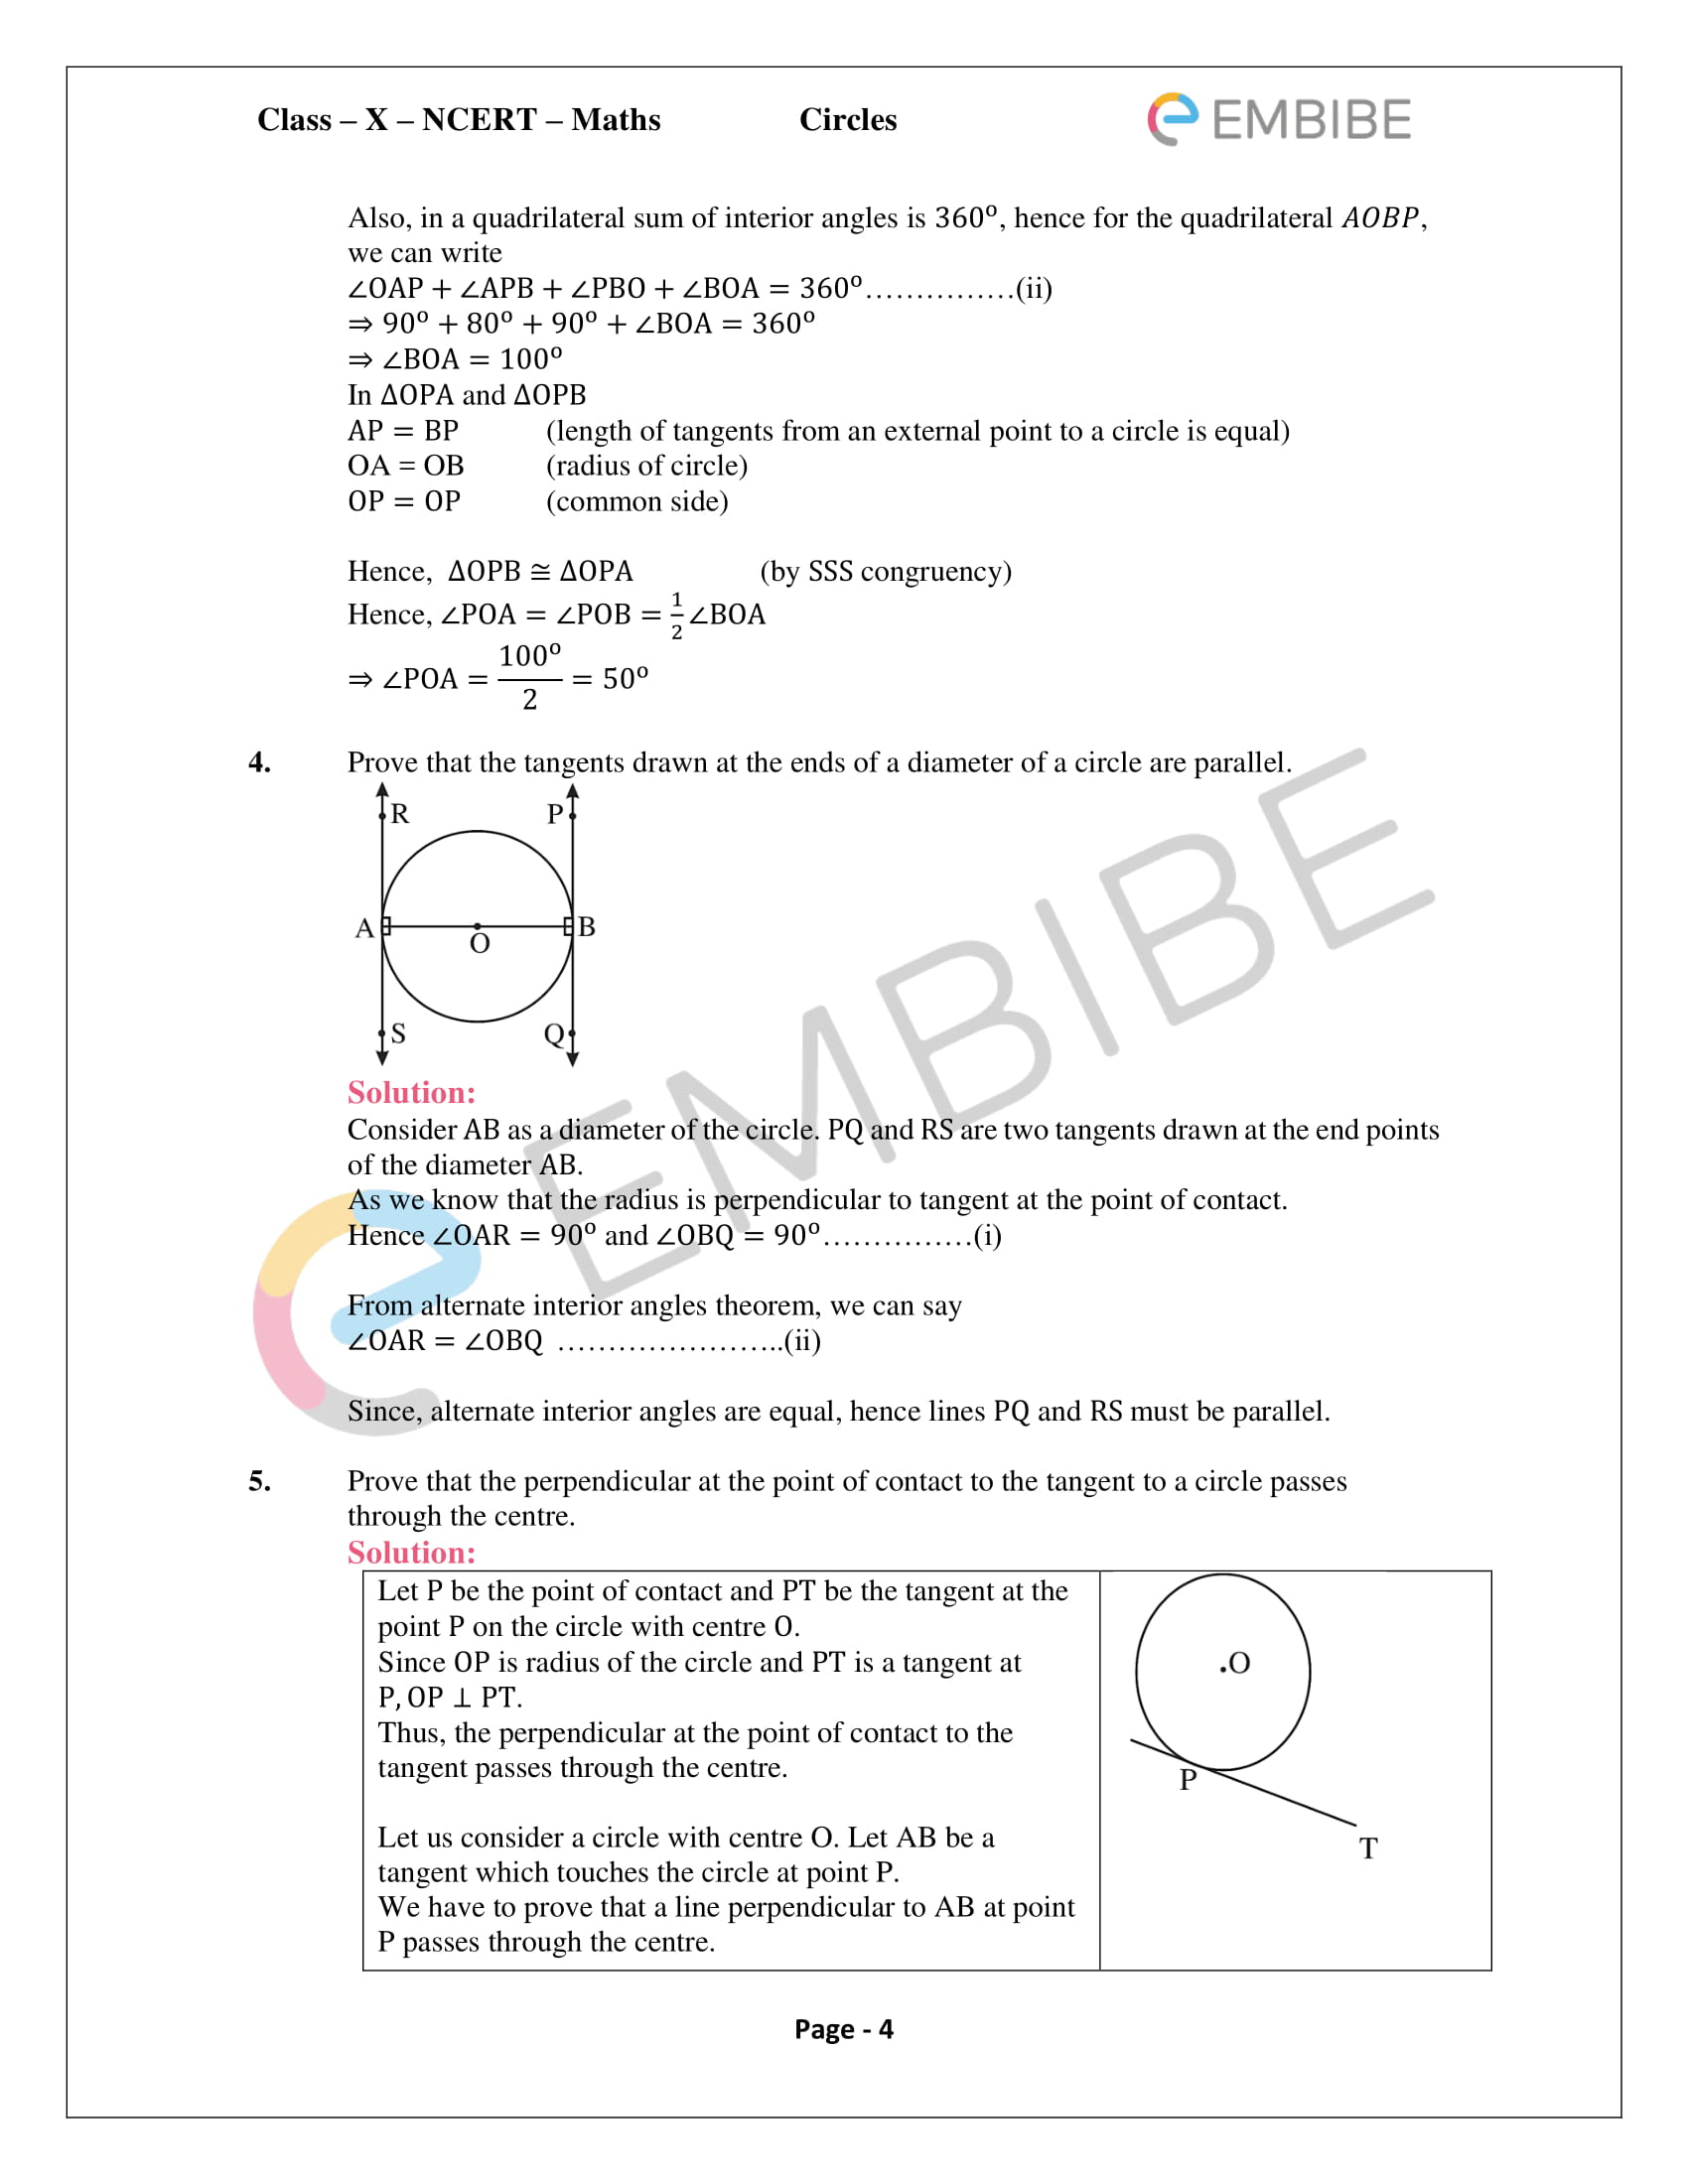 NCERT Solutions For Class 10 Maths Chapter 10: Circles (PDF